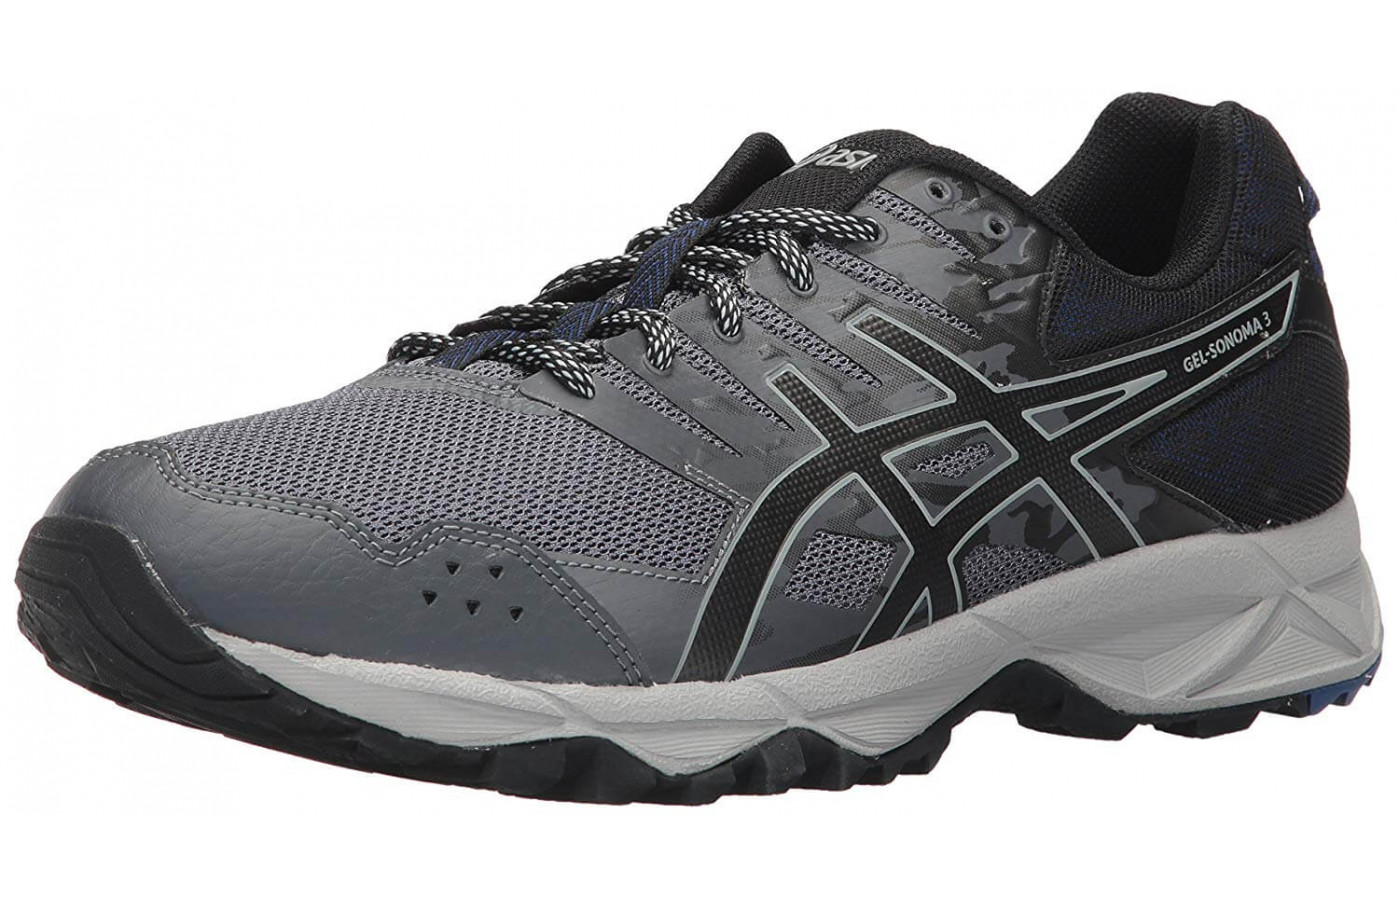 factory outlets preview of stable quality Asics Gel Sonoma 3 RunnerClick